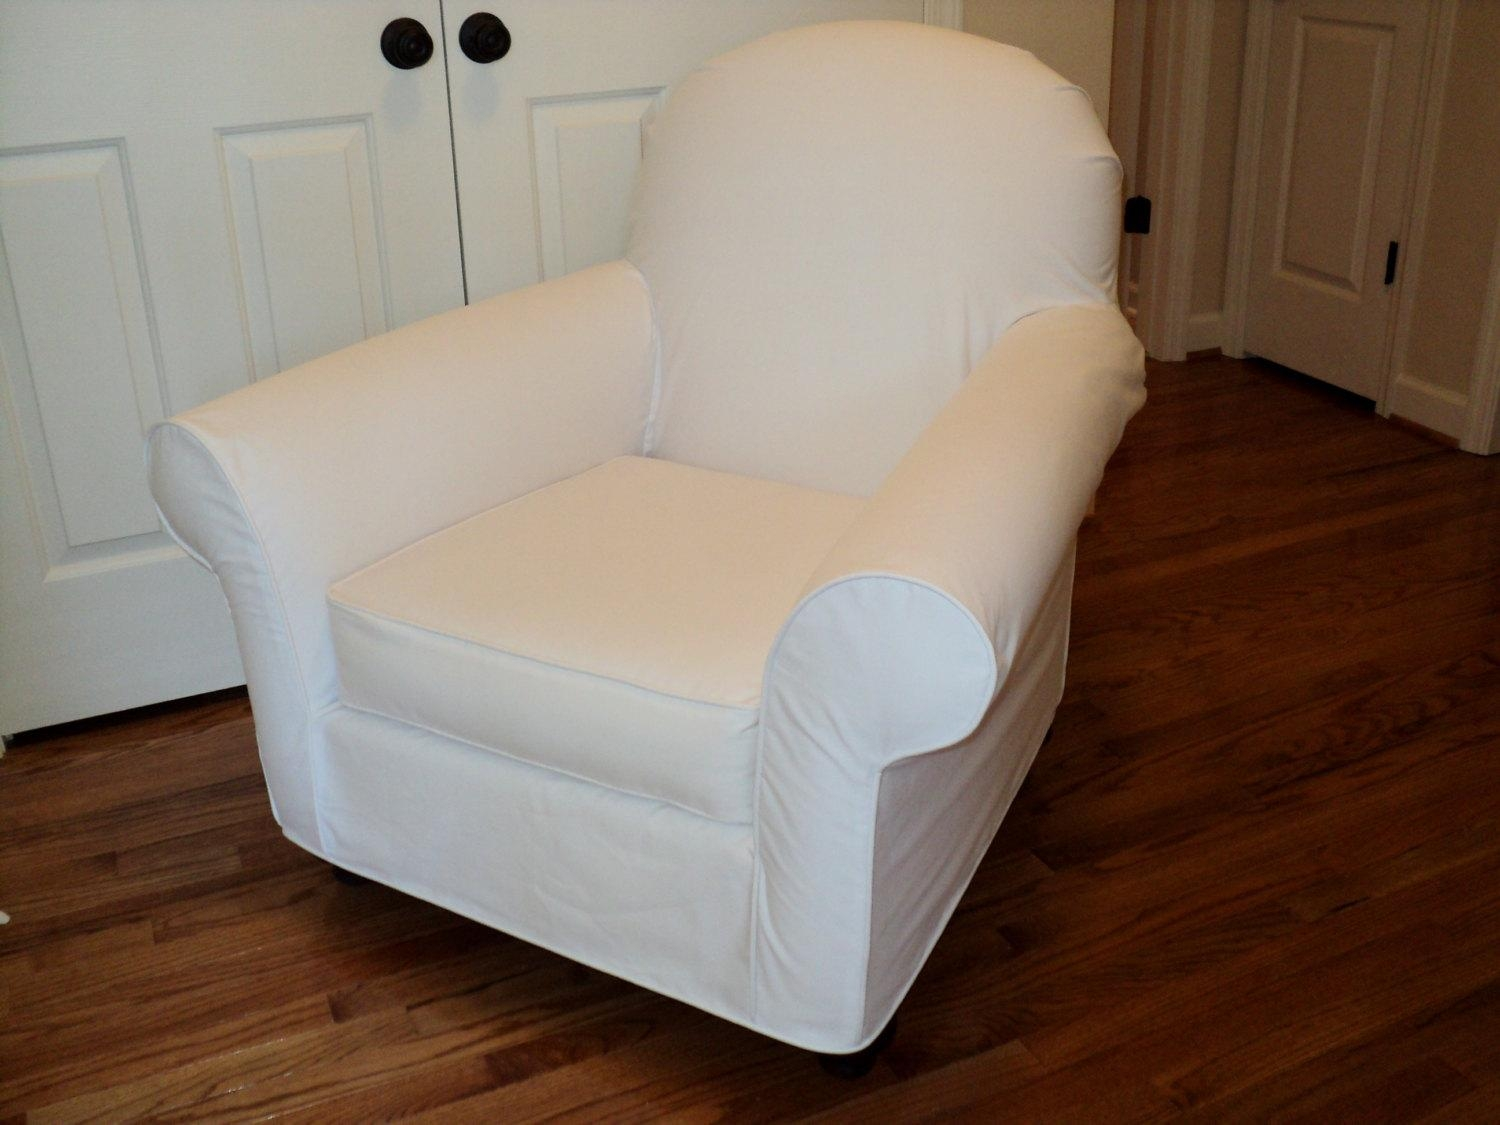 Custom Slipcover For Your Pb Dream Rocker With Wooden Pertaining To Pottery Barn Chair Slipcovers (View 3 of 20)